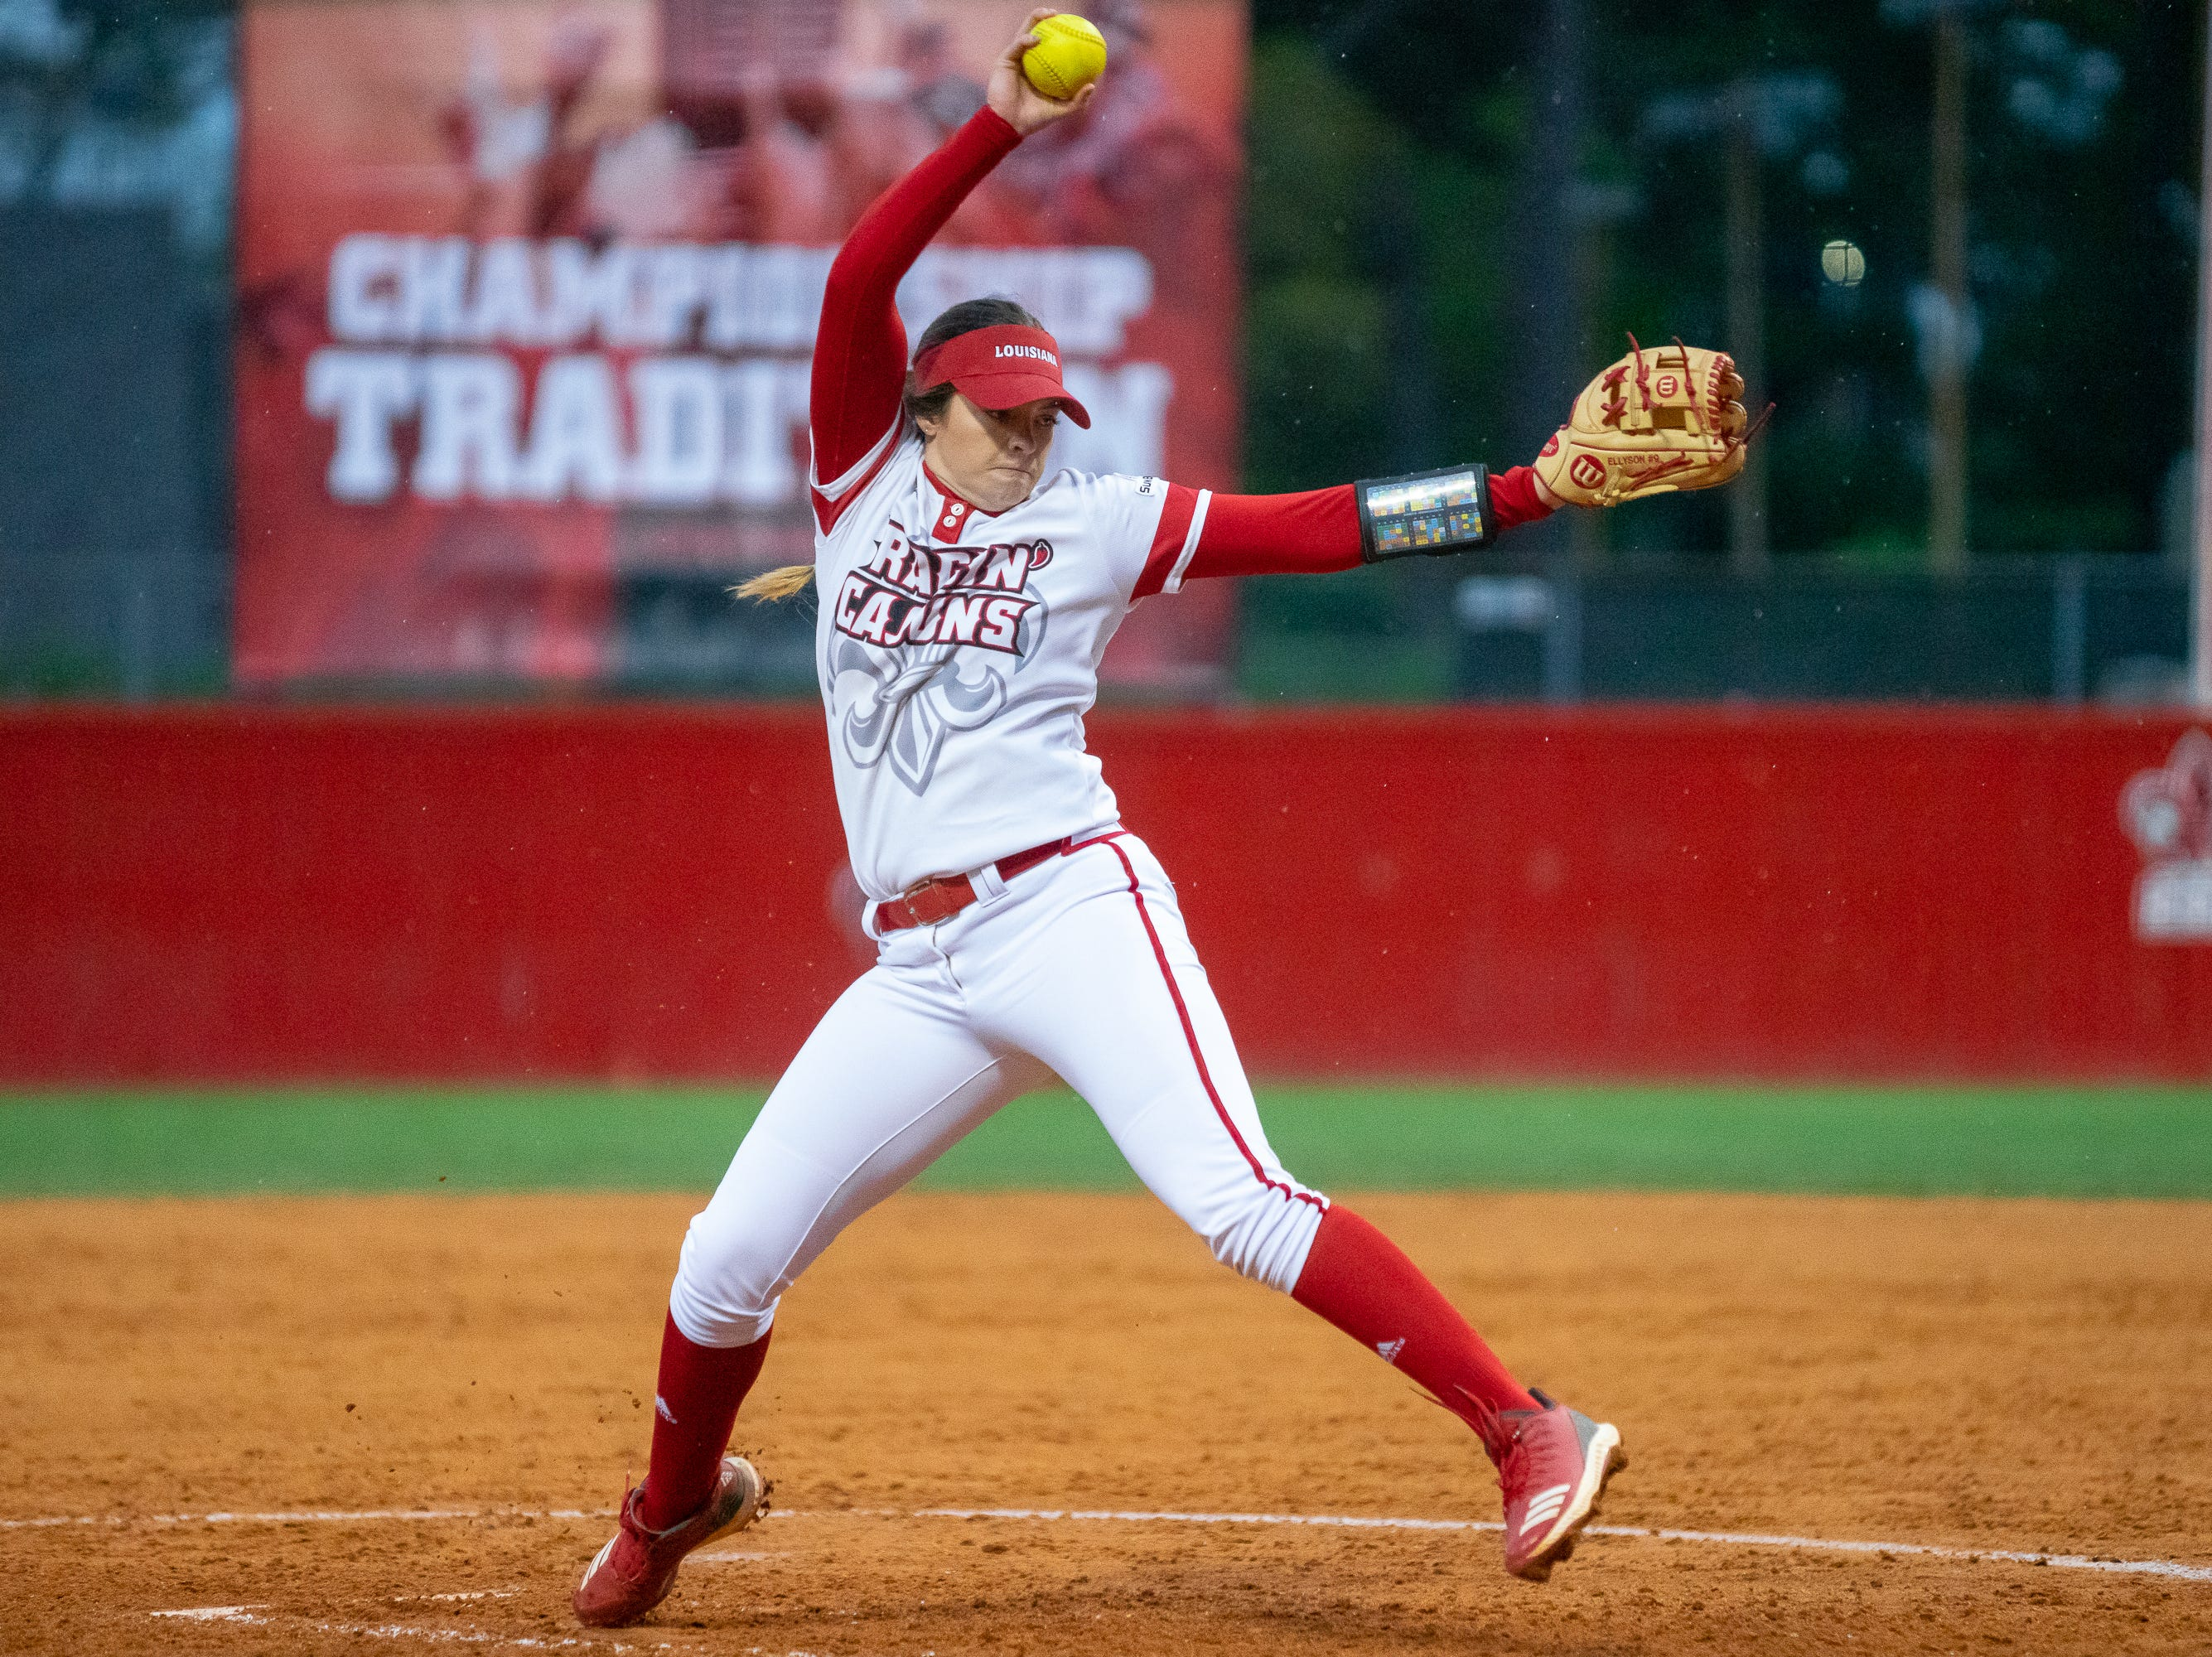 UL's pitcher Summer Ellyson throws from the circle as the Ragin' Cajuns take on the Troy Trojans at Lamson Park, Yvette Girouard Field on Friday, March 15, 2019.